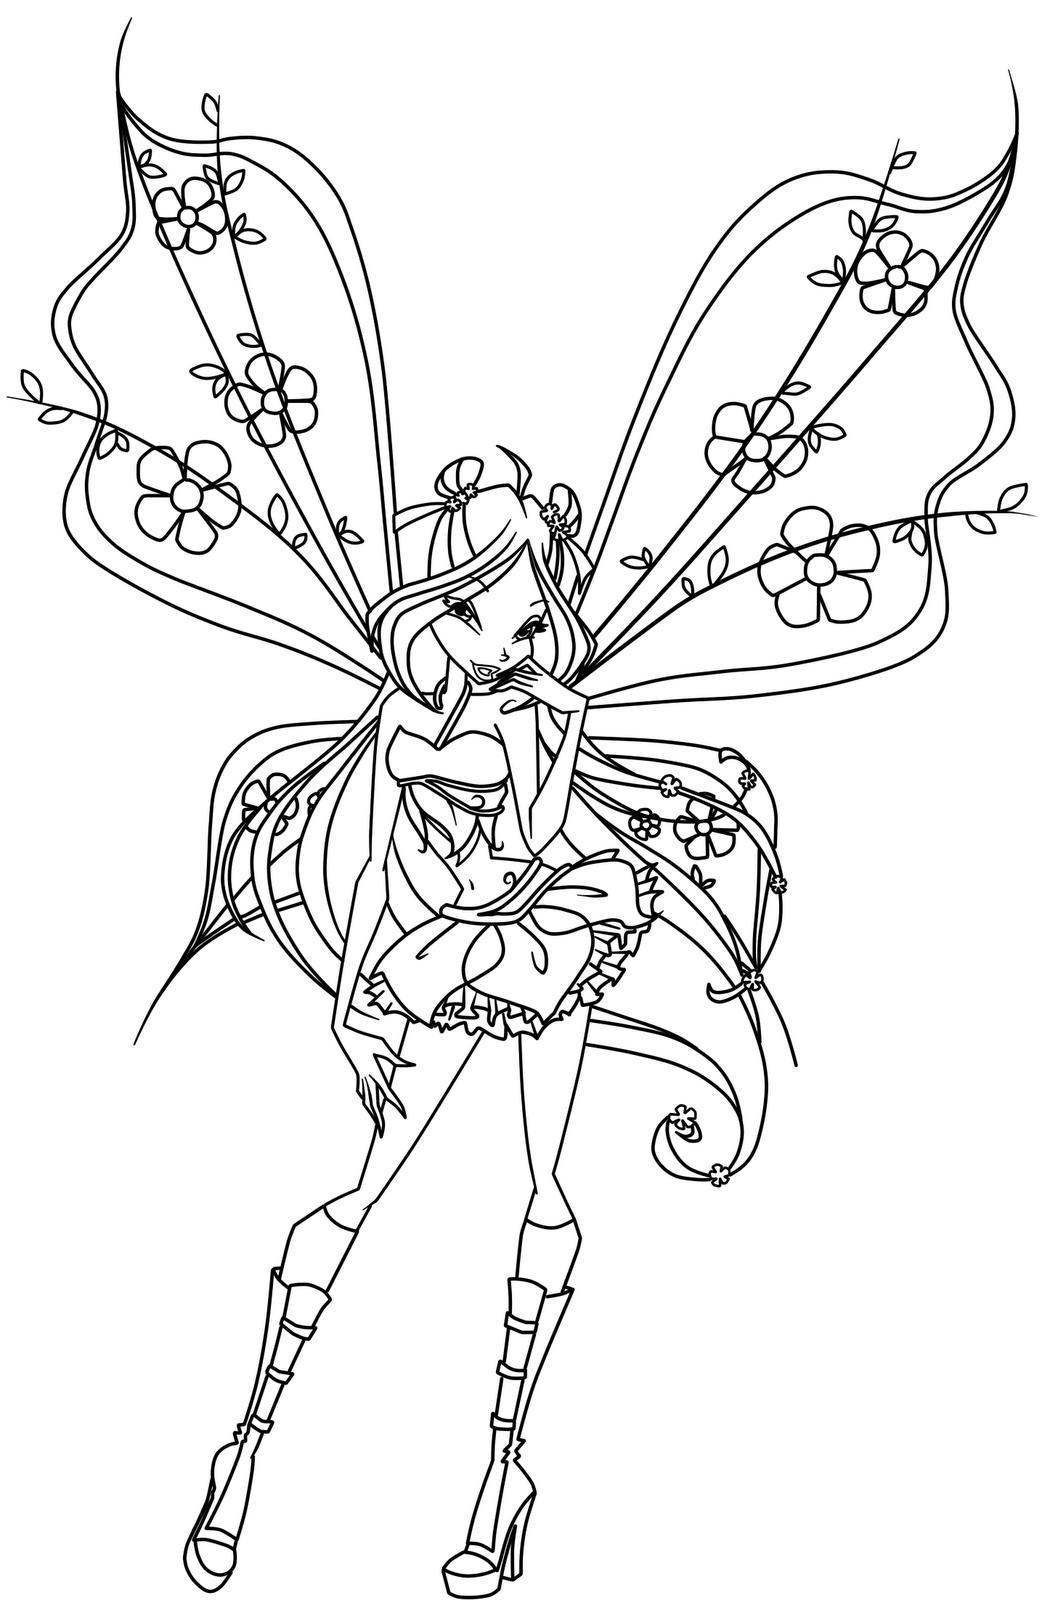 Winx Club Coloring Pages Drawing Free Image